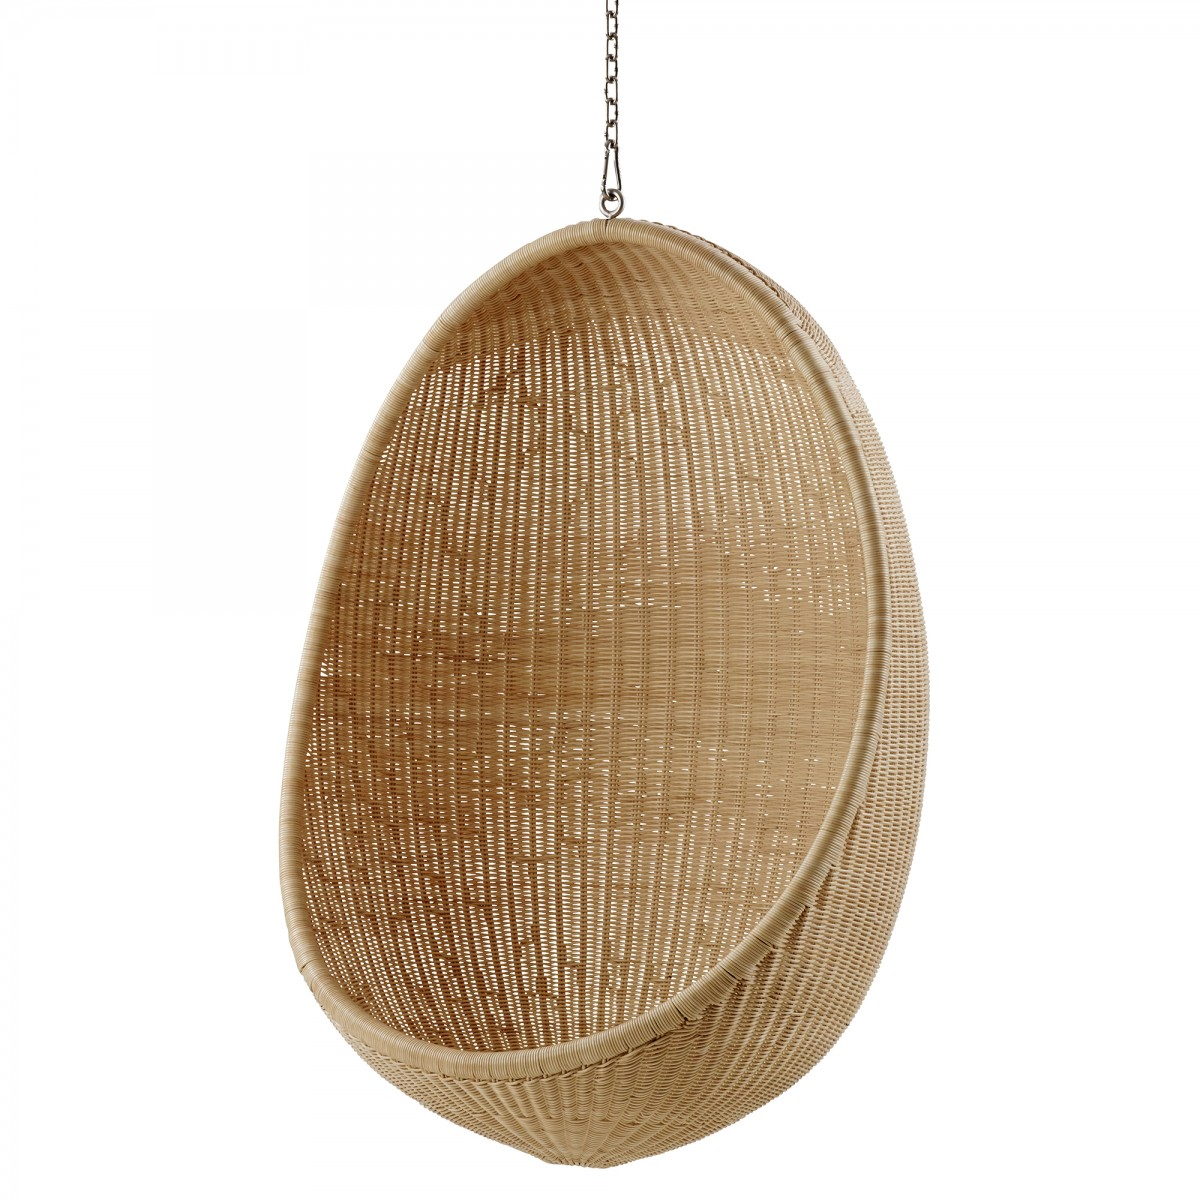 HANGING EGG natural armchair with chain - SIKA design